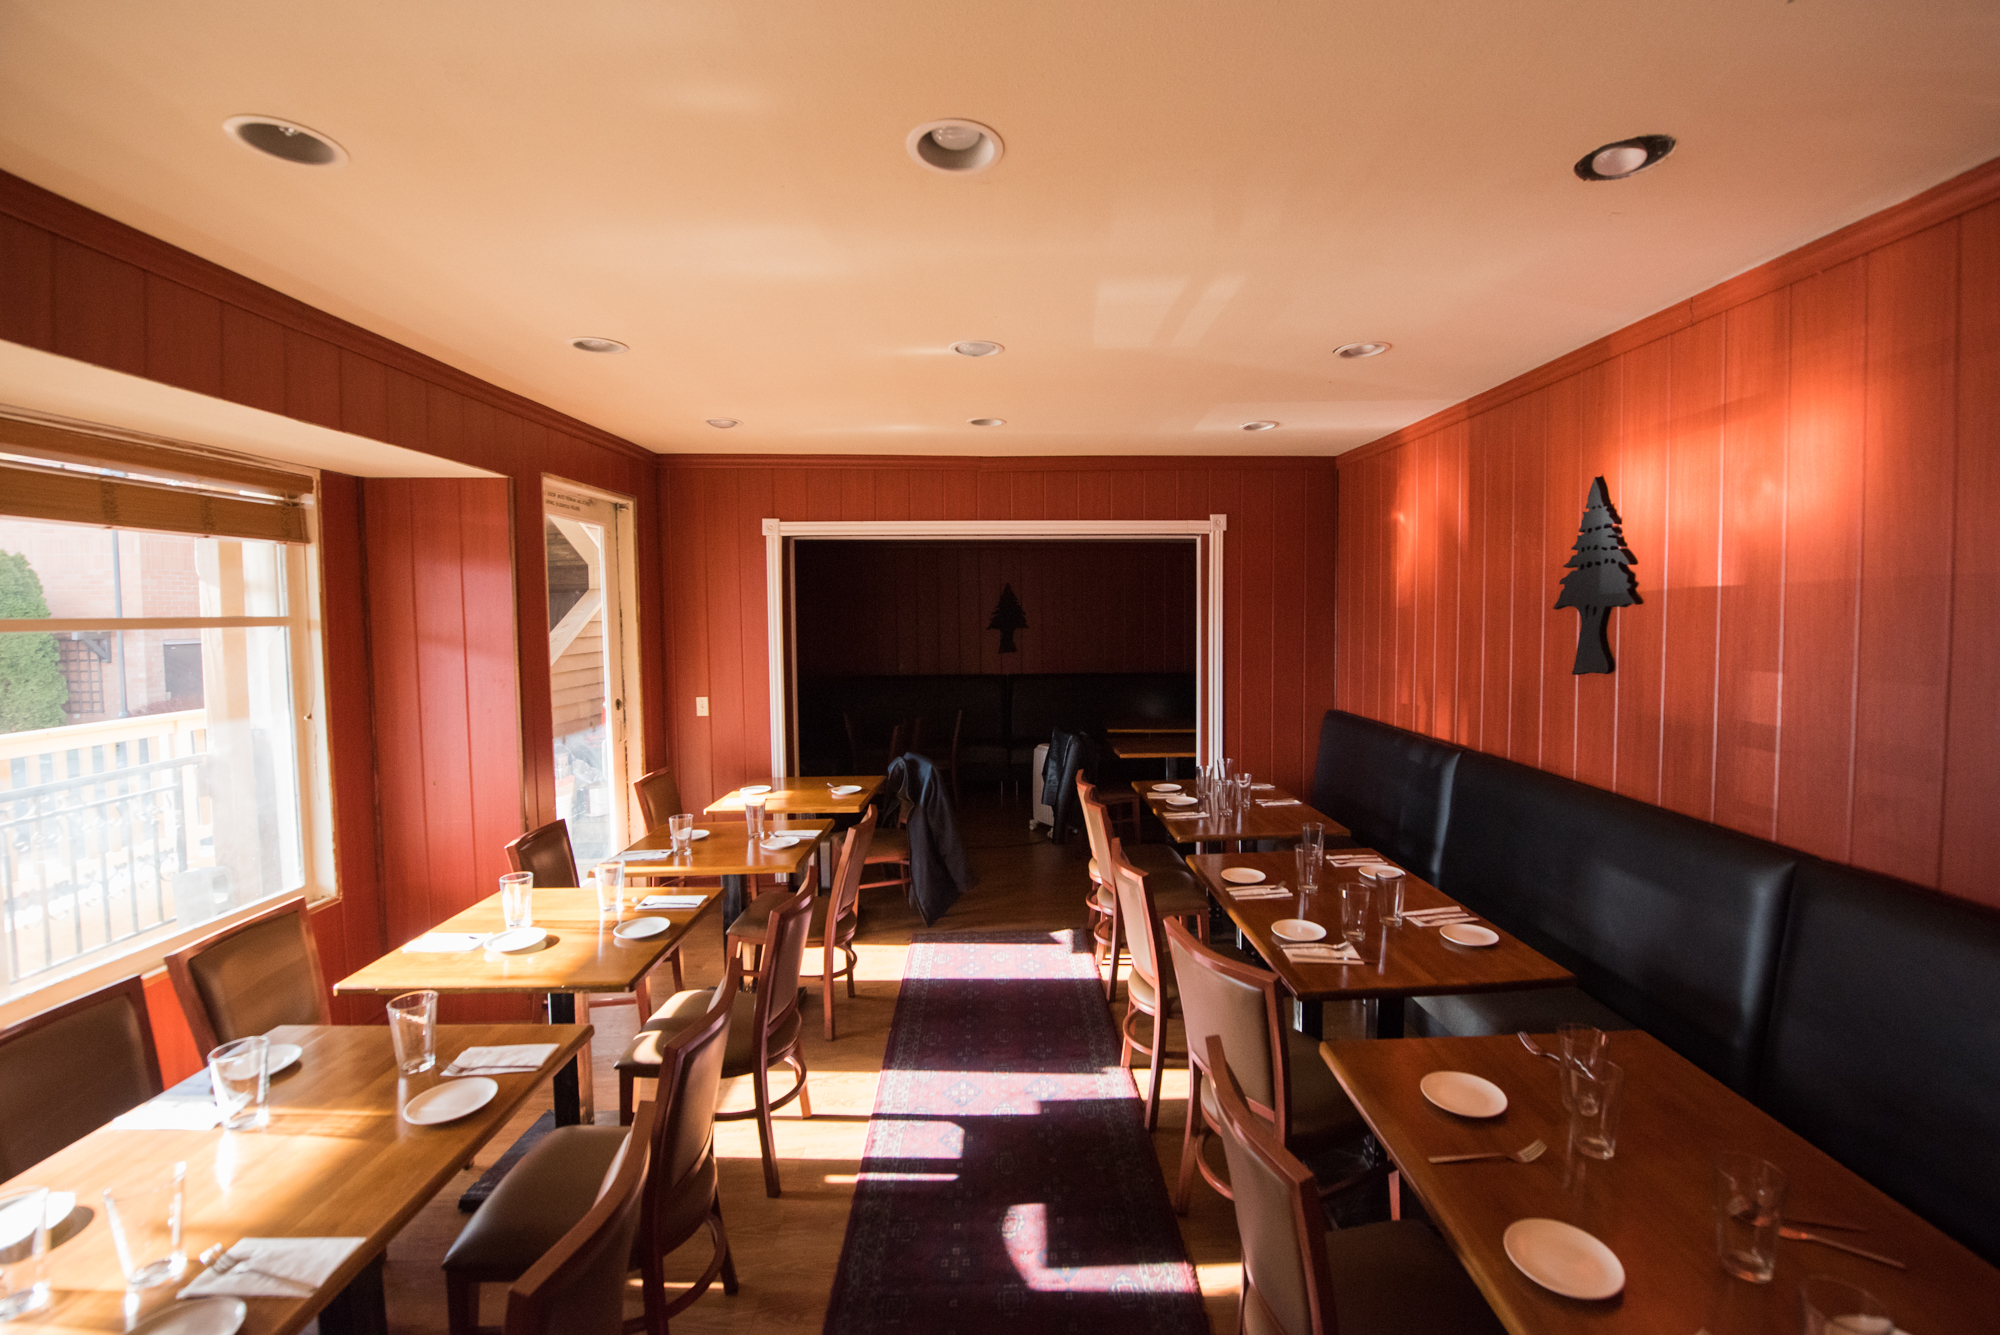 20 Restaurants With Easy Parking - Seattle - The Infatuation